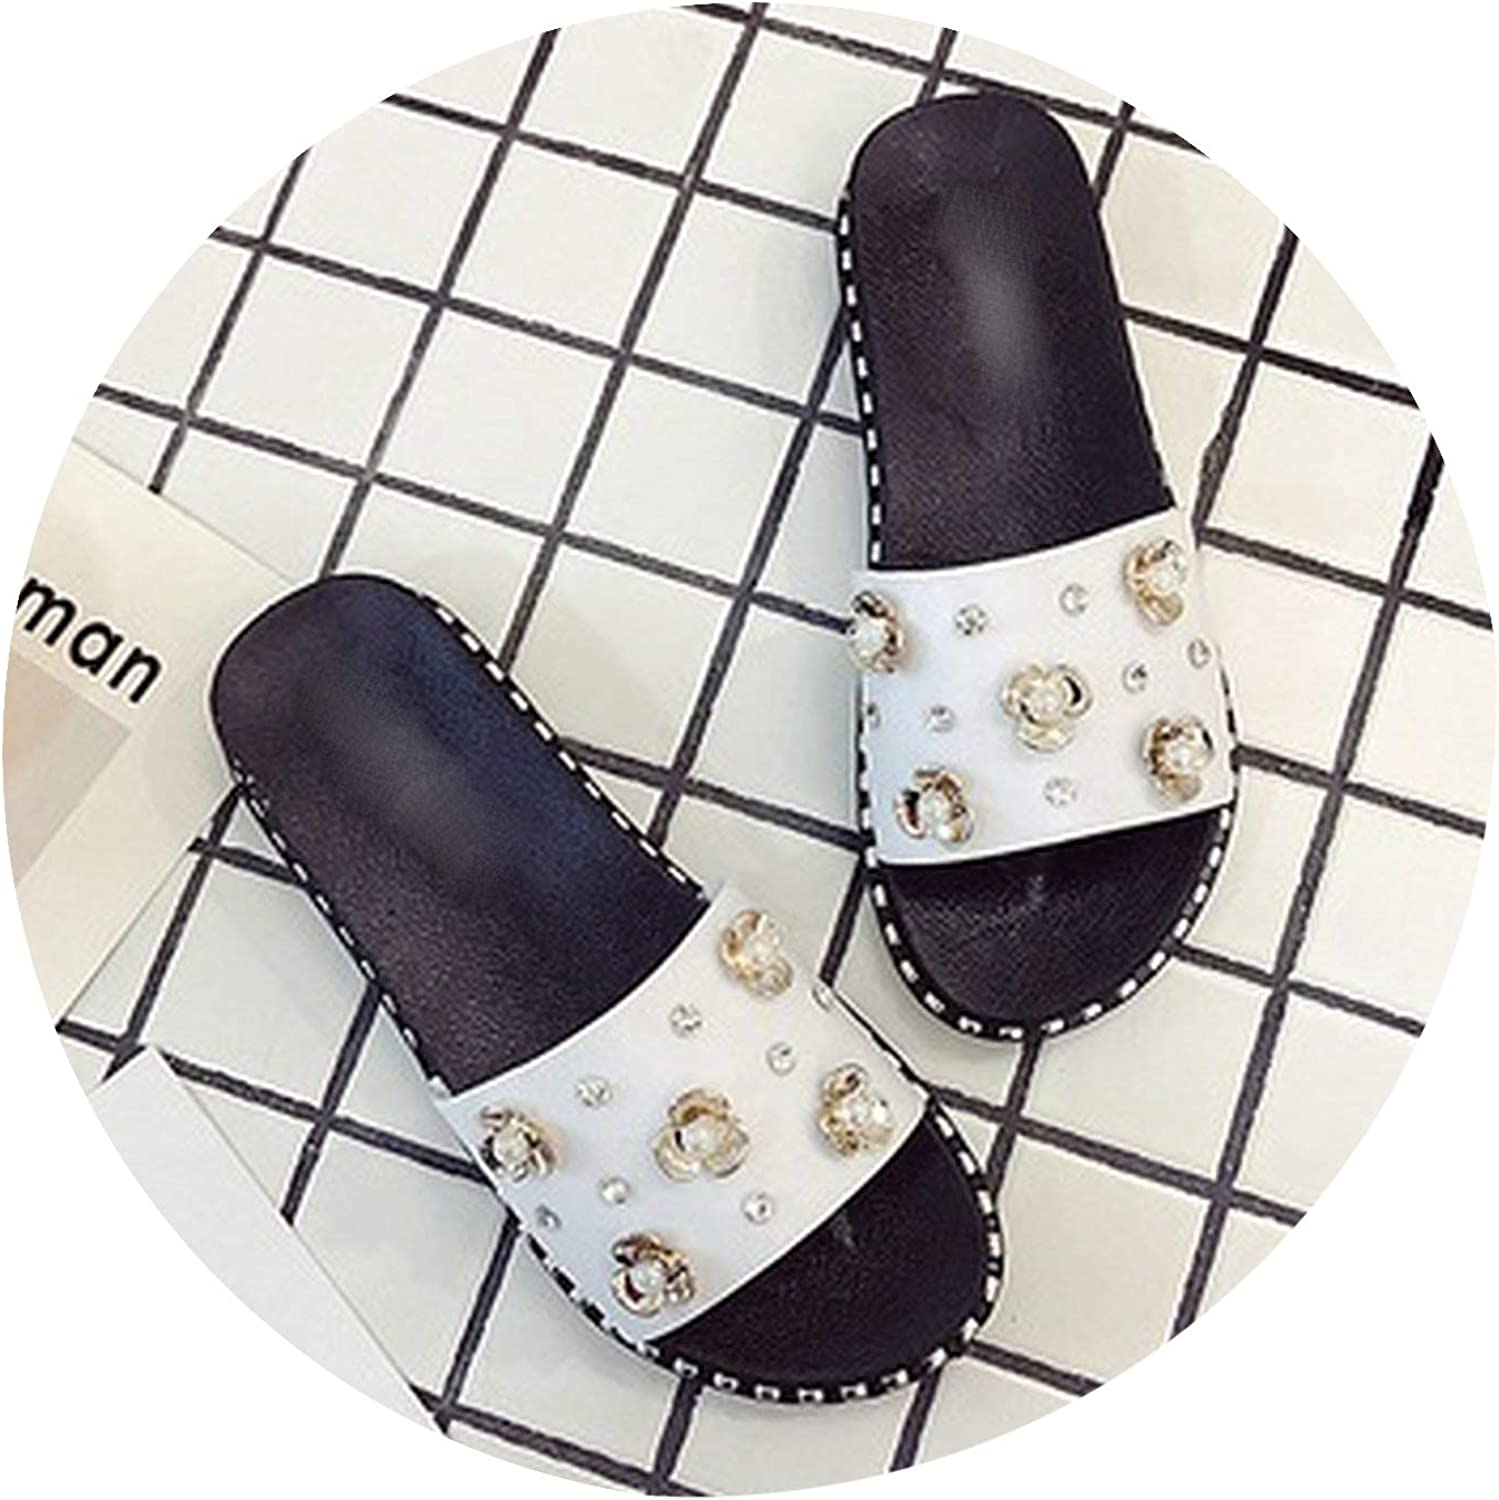 Summer Flat Sandals and Slippers Students Rhinestone Wear Non-Slip Flip Flop.